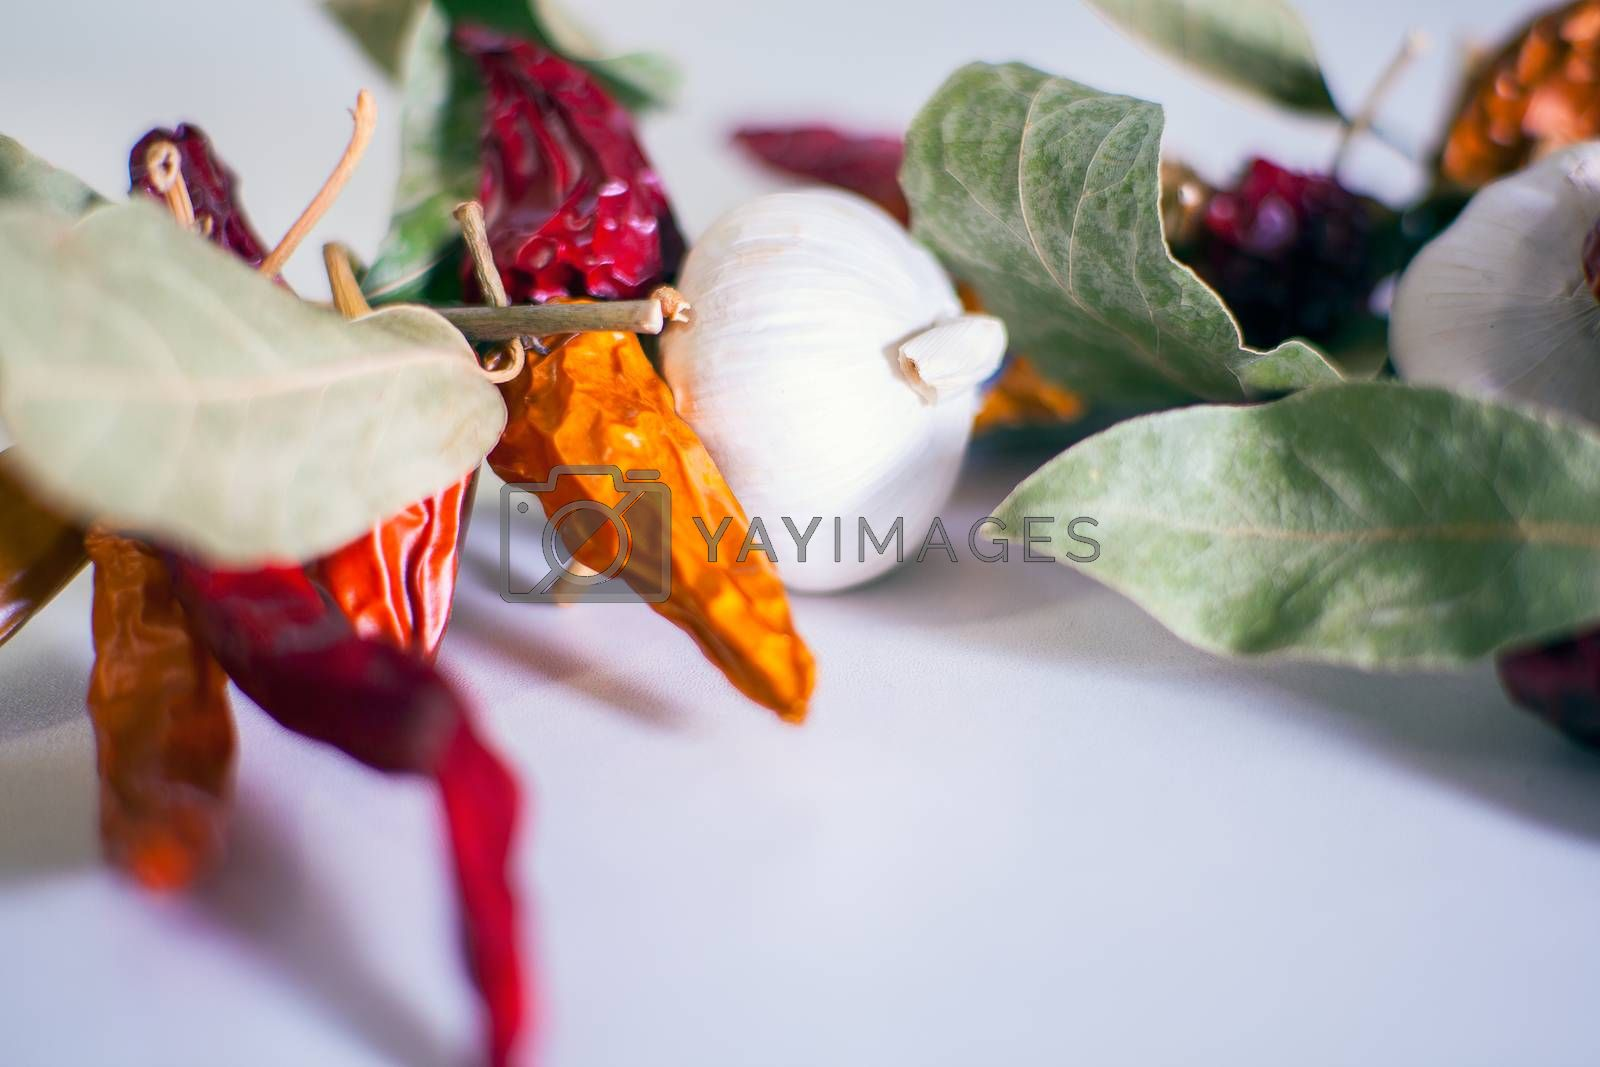 Close up of Garlics, chili peppers, bay leaves